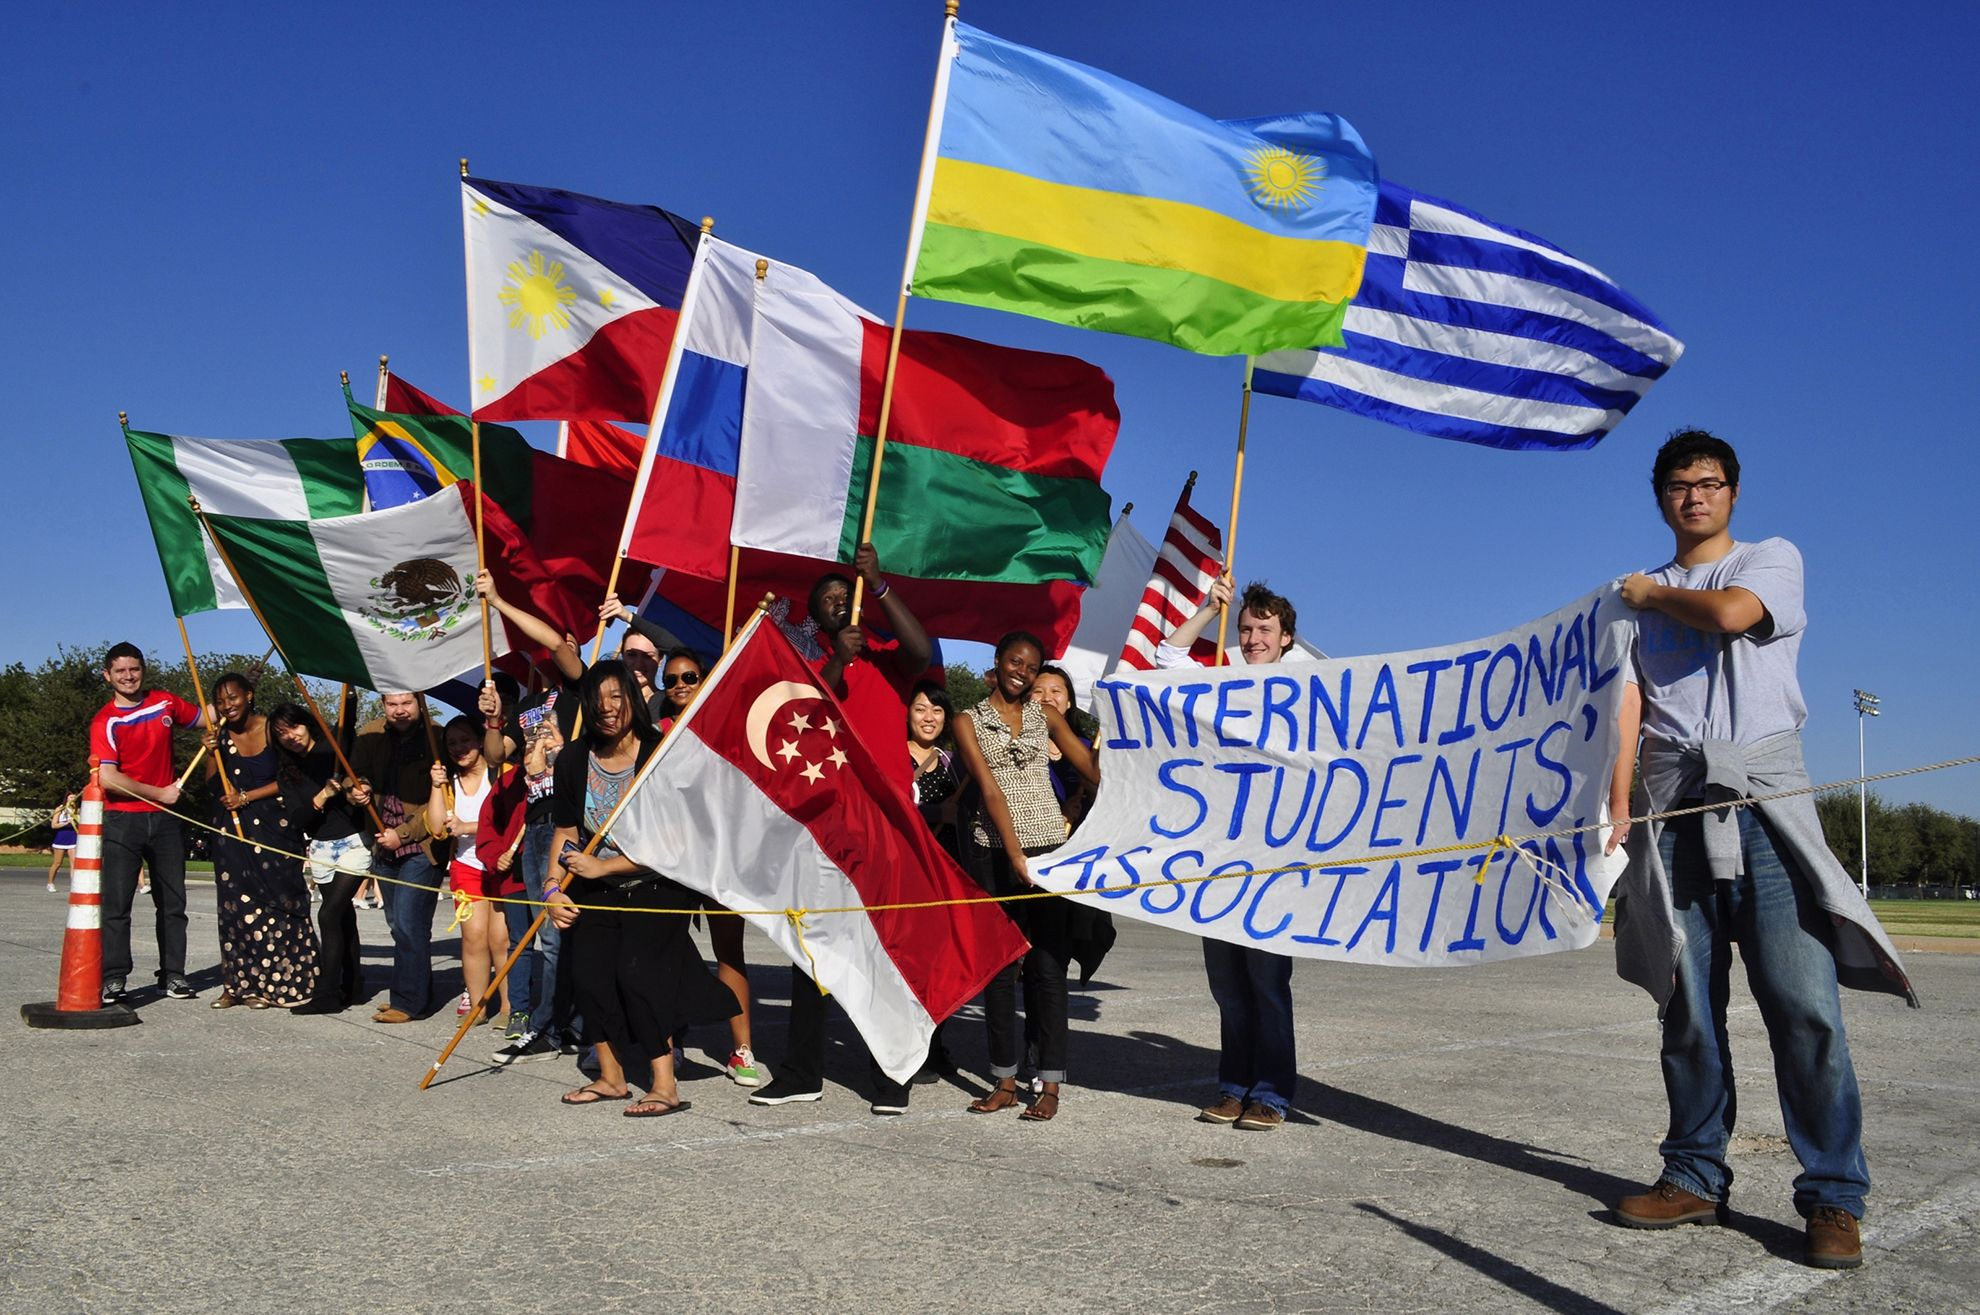 International Student Association